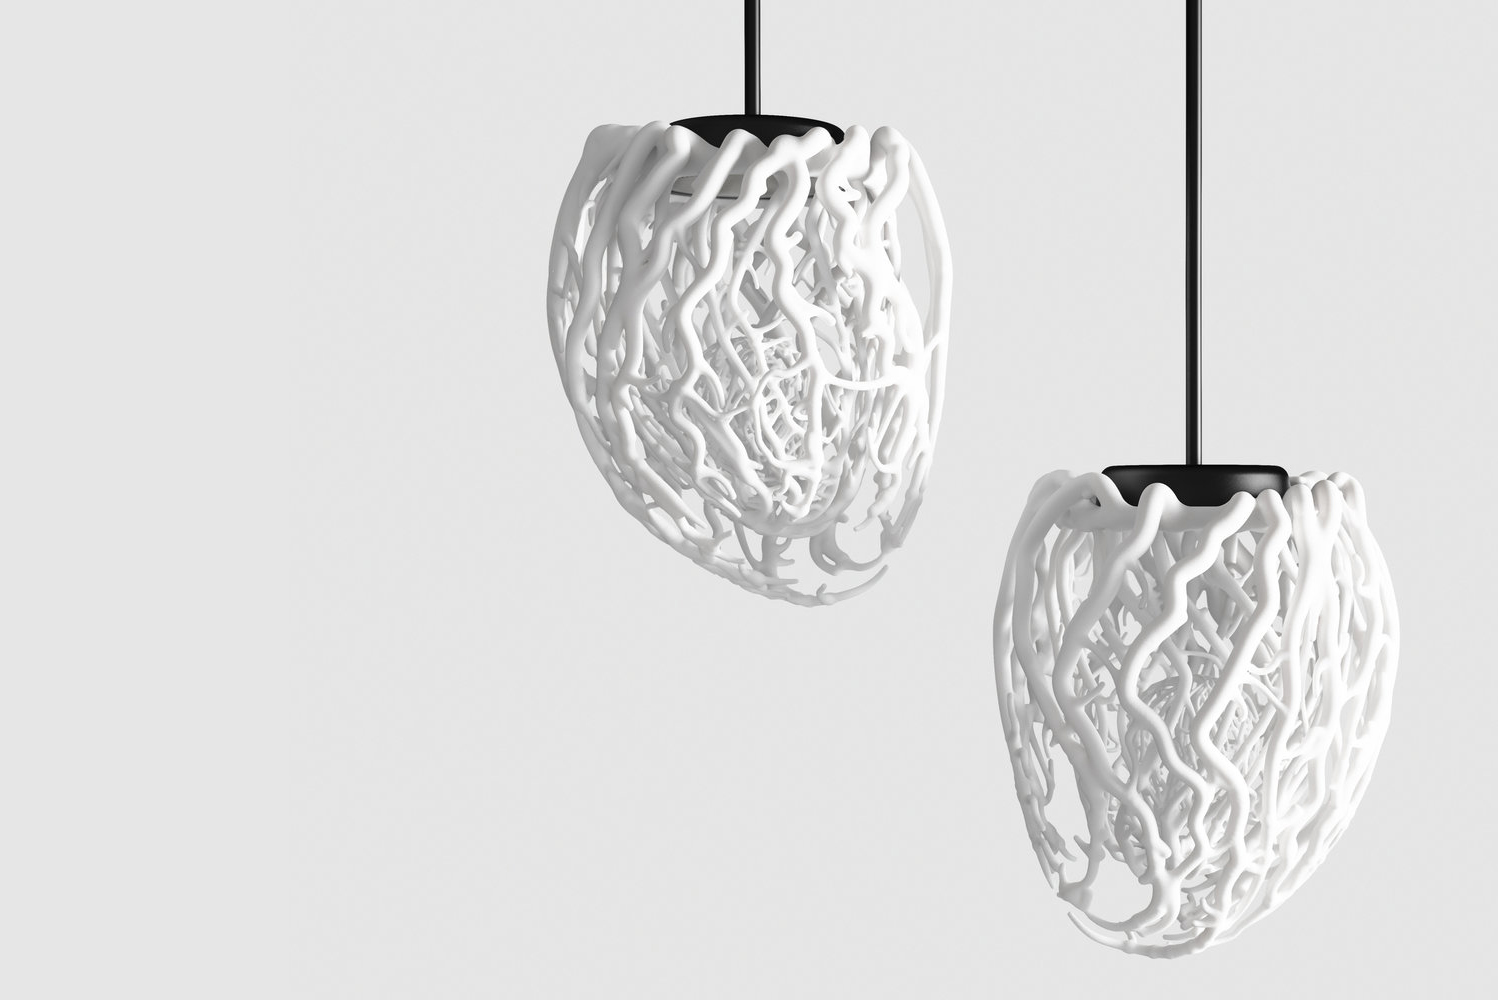 To make the lamp, Sao Paulo-based Requena collected audio files from the heartbeat of three different subjects.